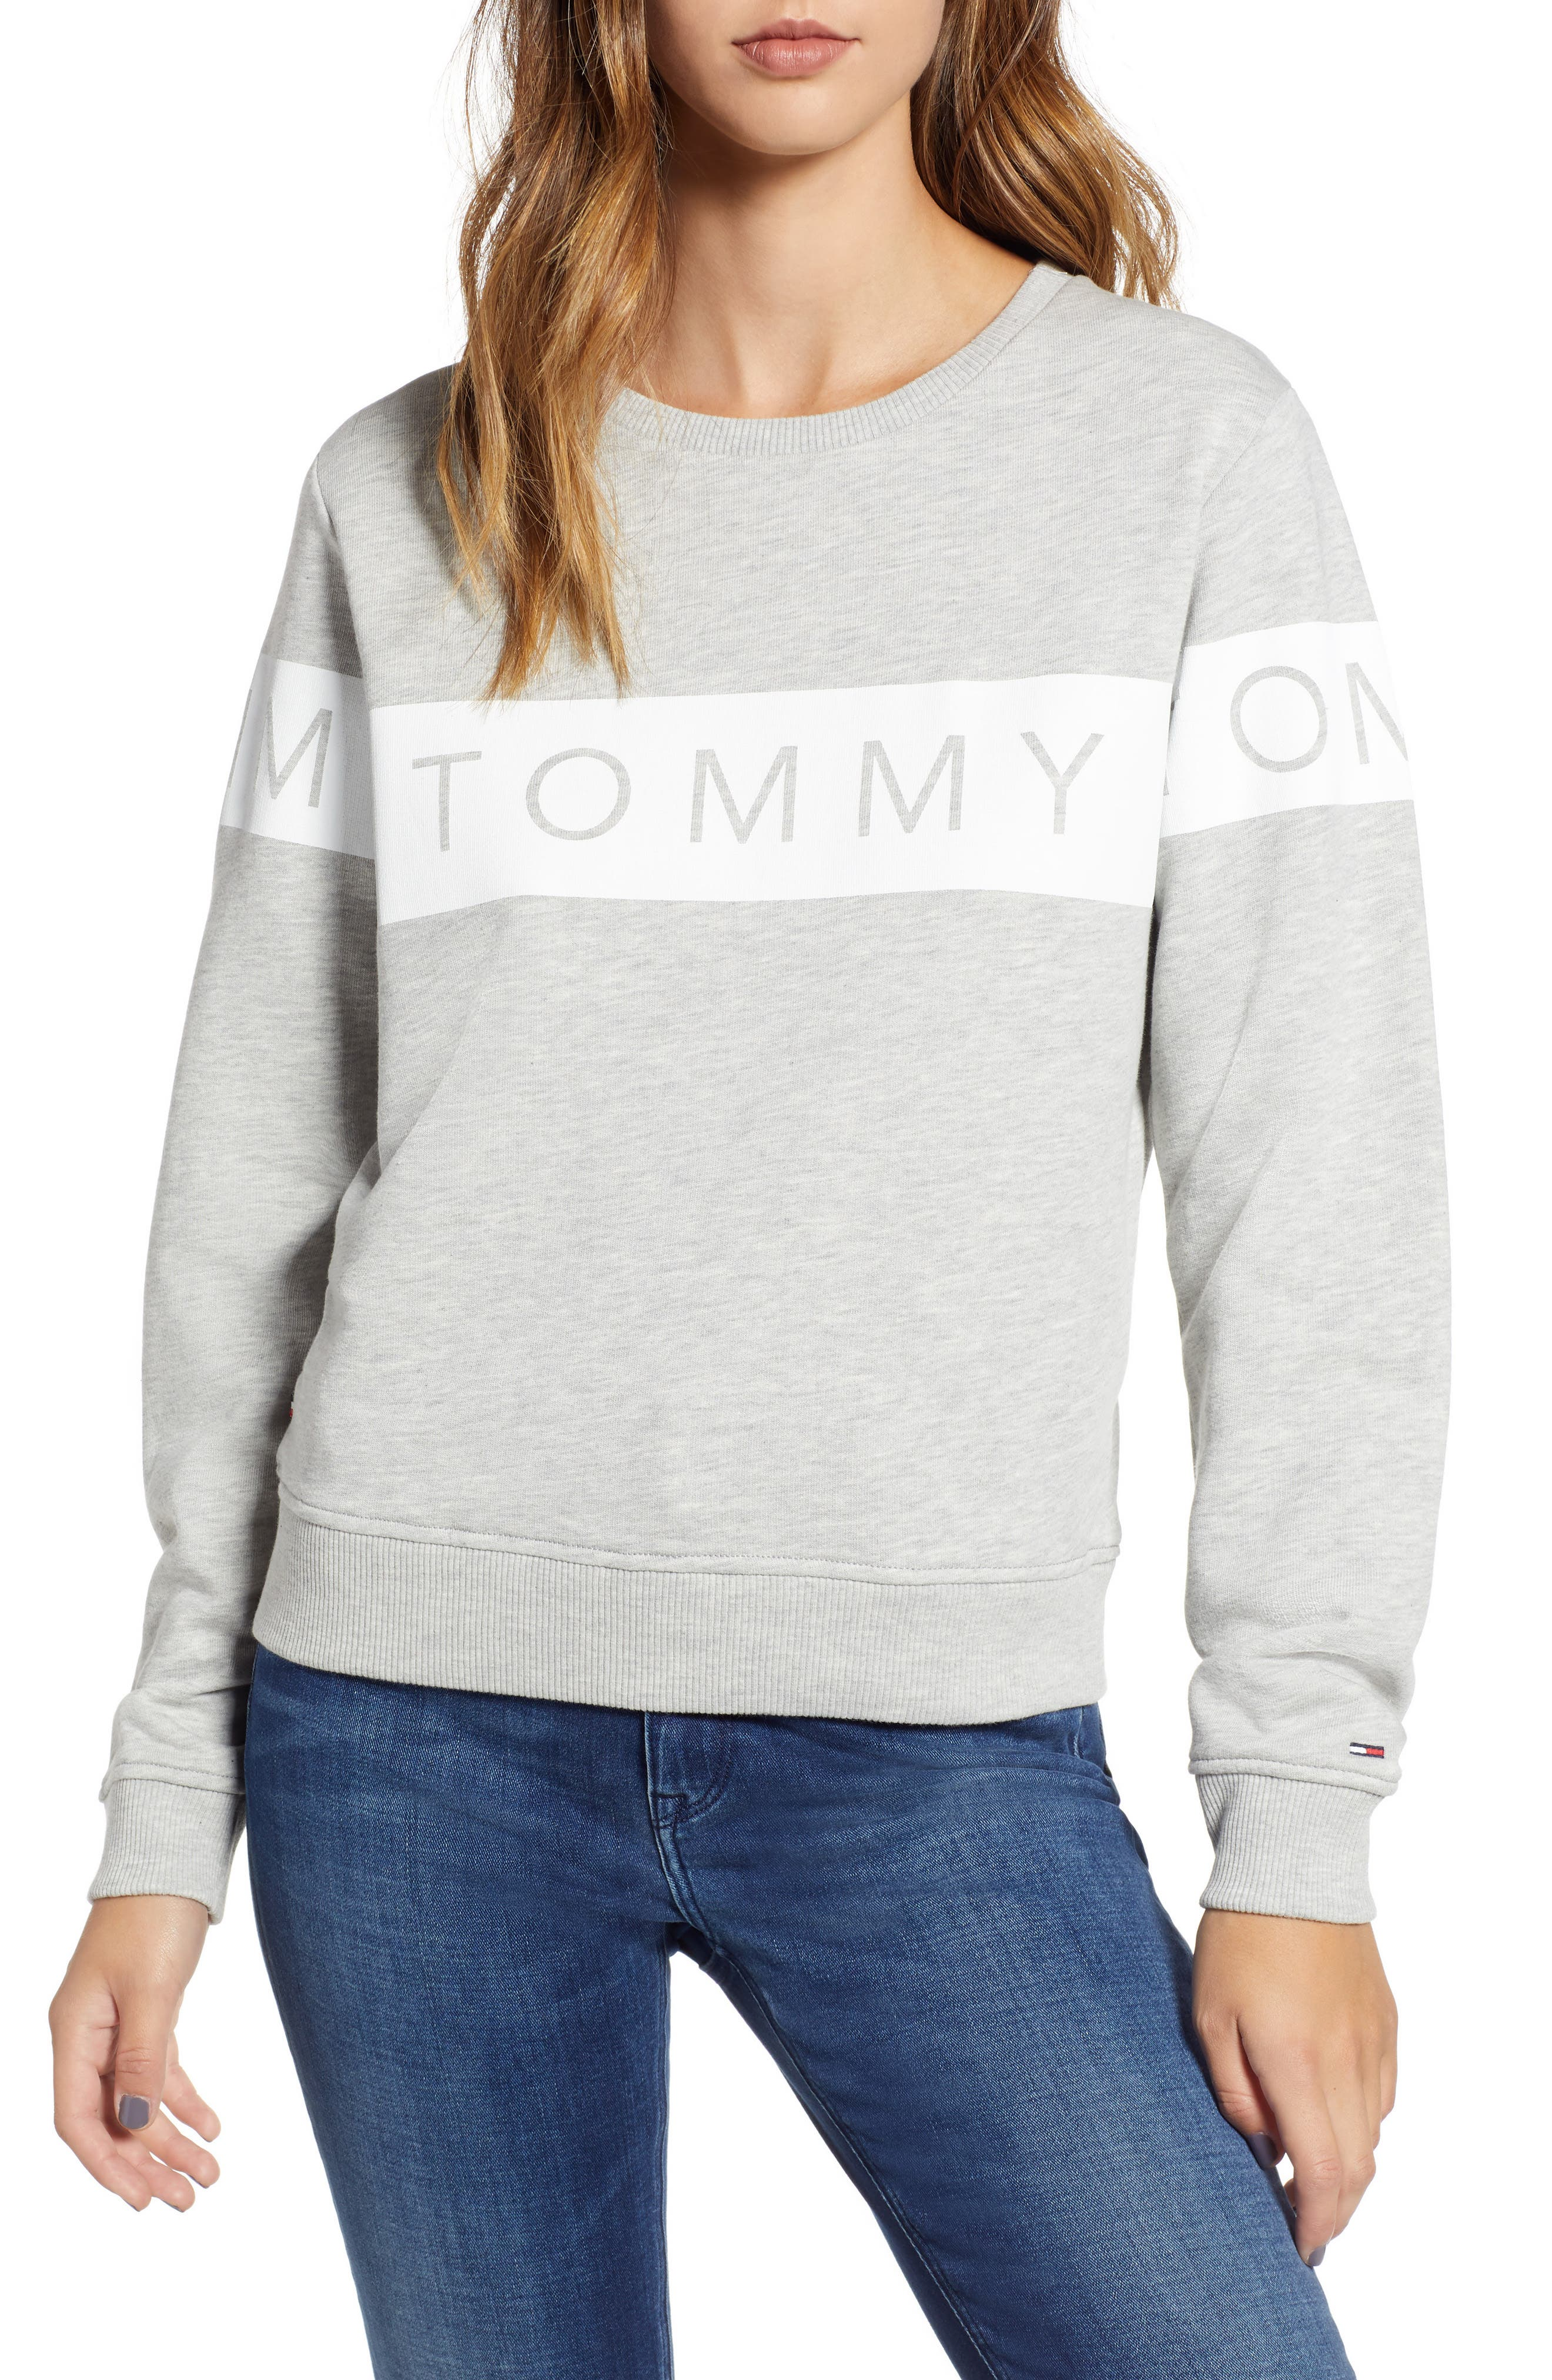 Logo Sweatshirt,                             Main thumbnail 1, color,                             020